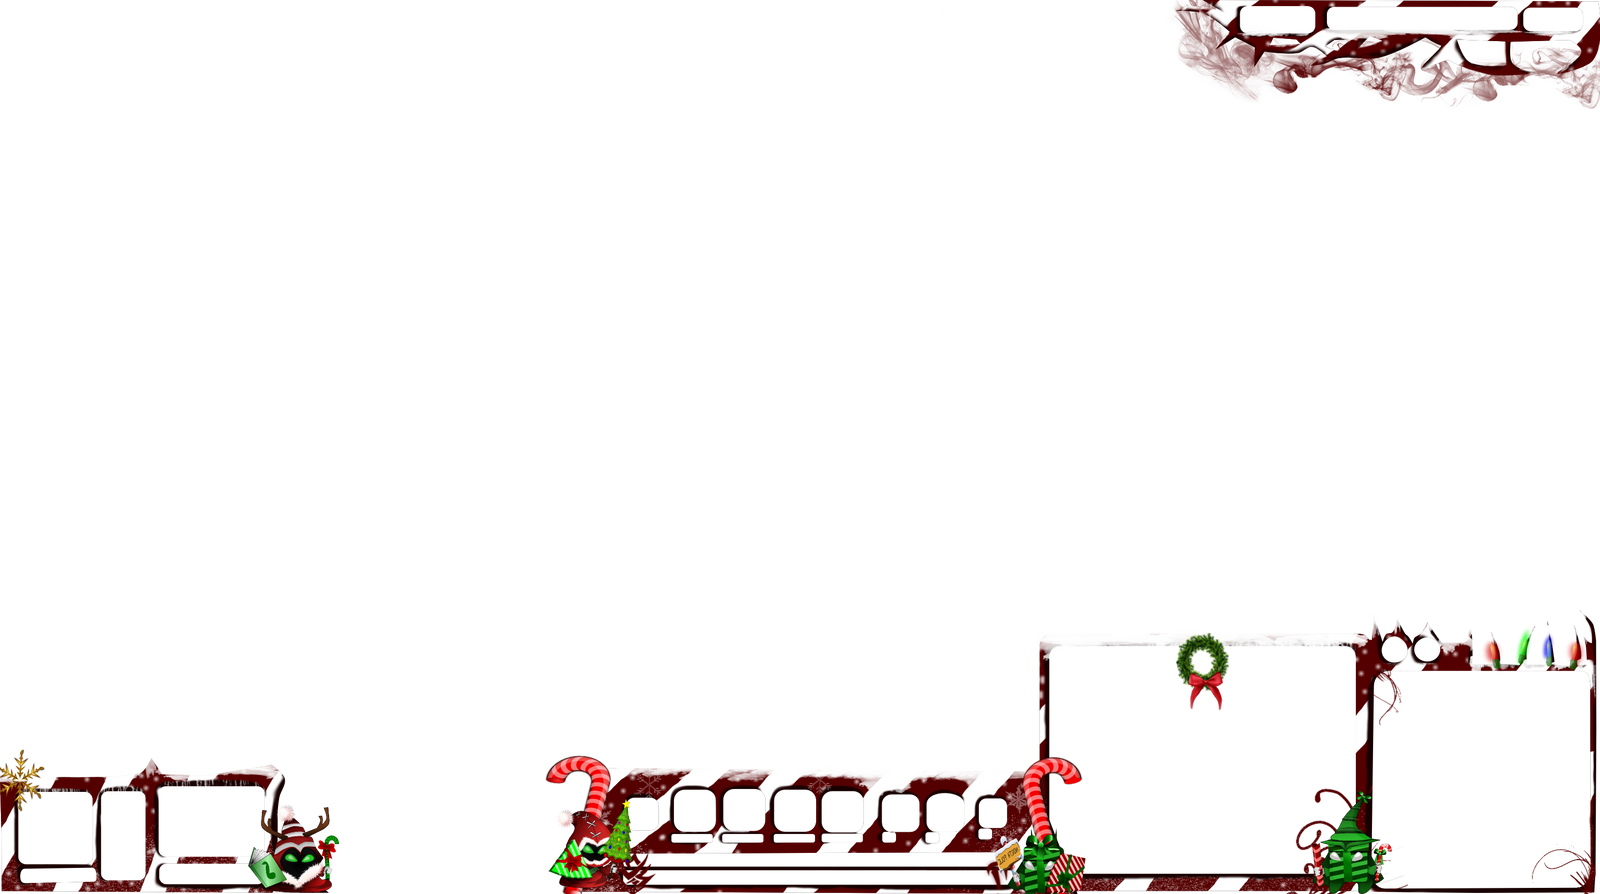 minions league of legends christmas overlay stream by adream0fsin - Christmas Overlays